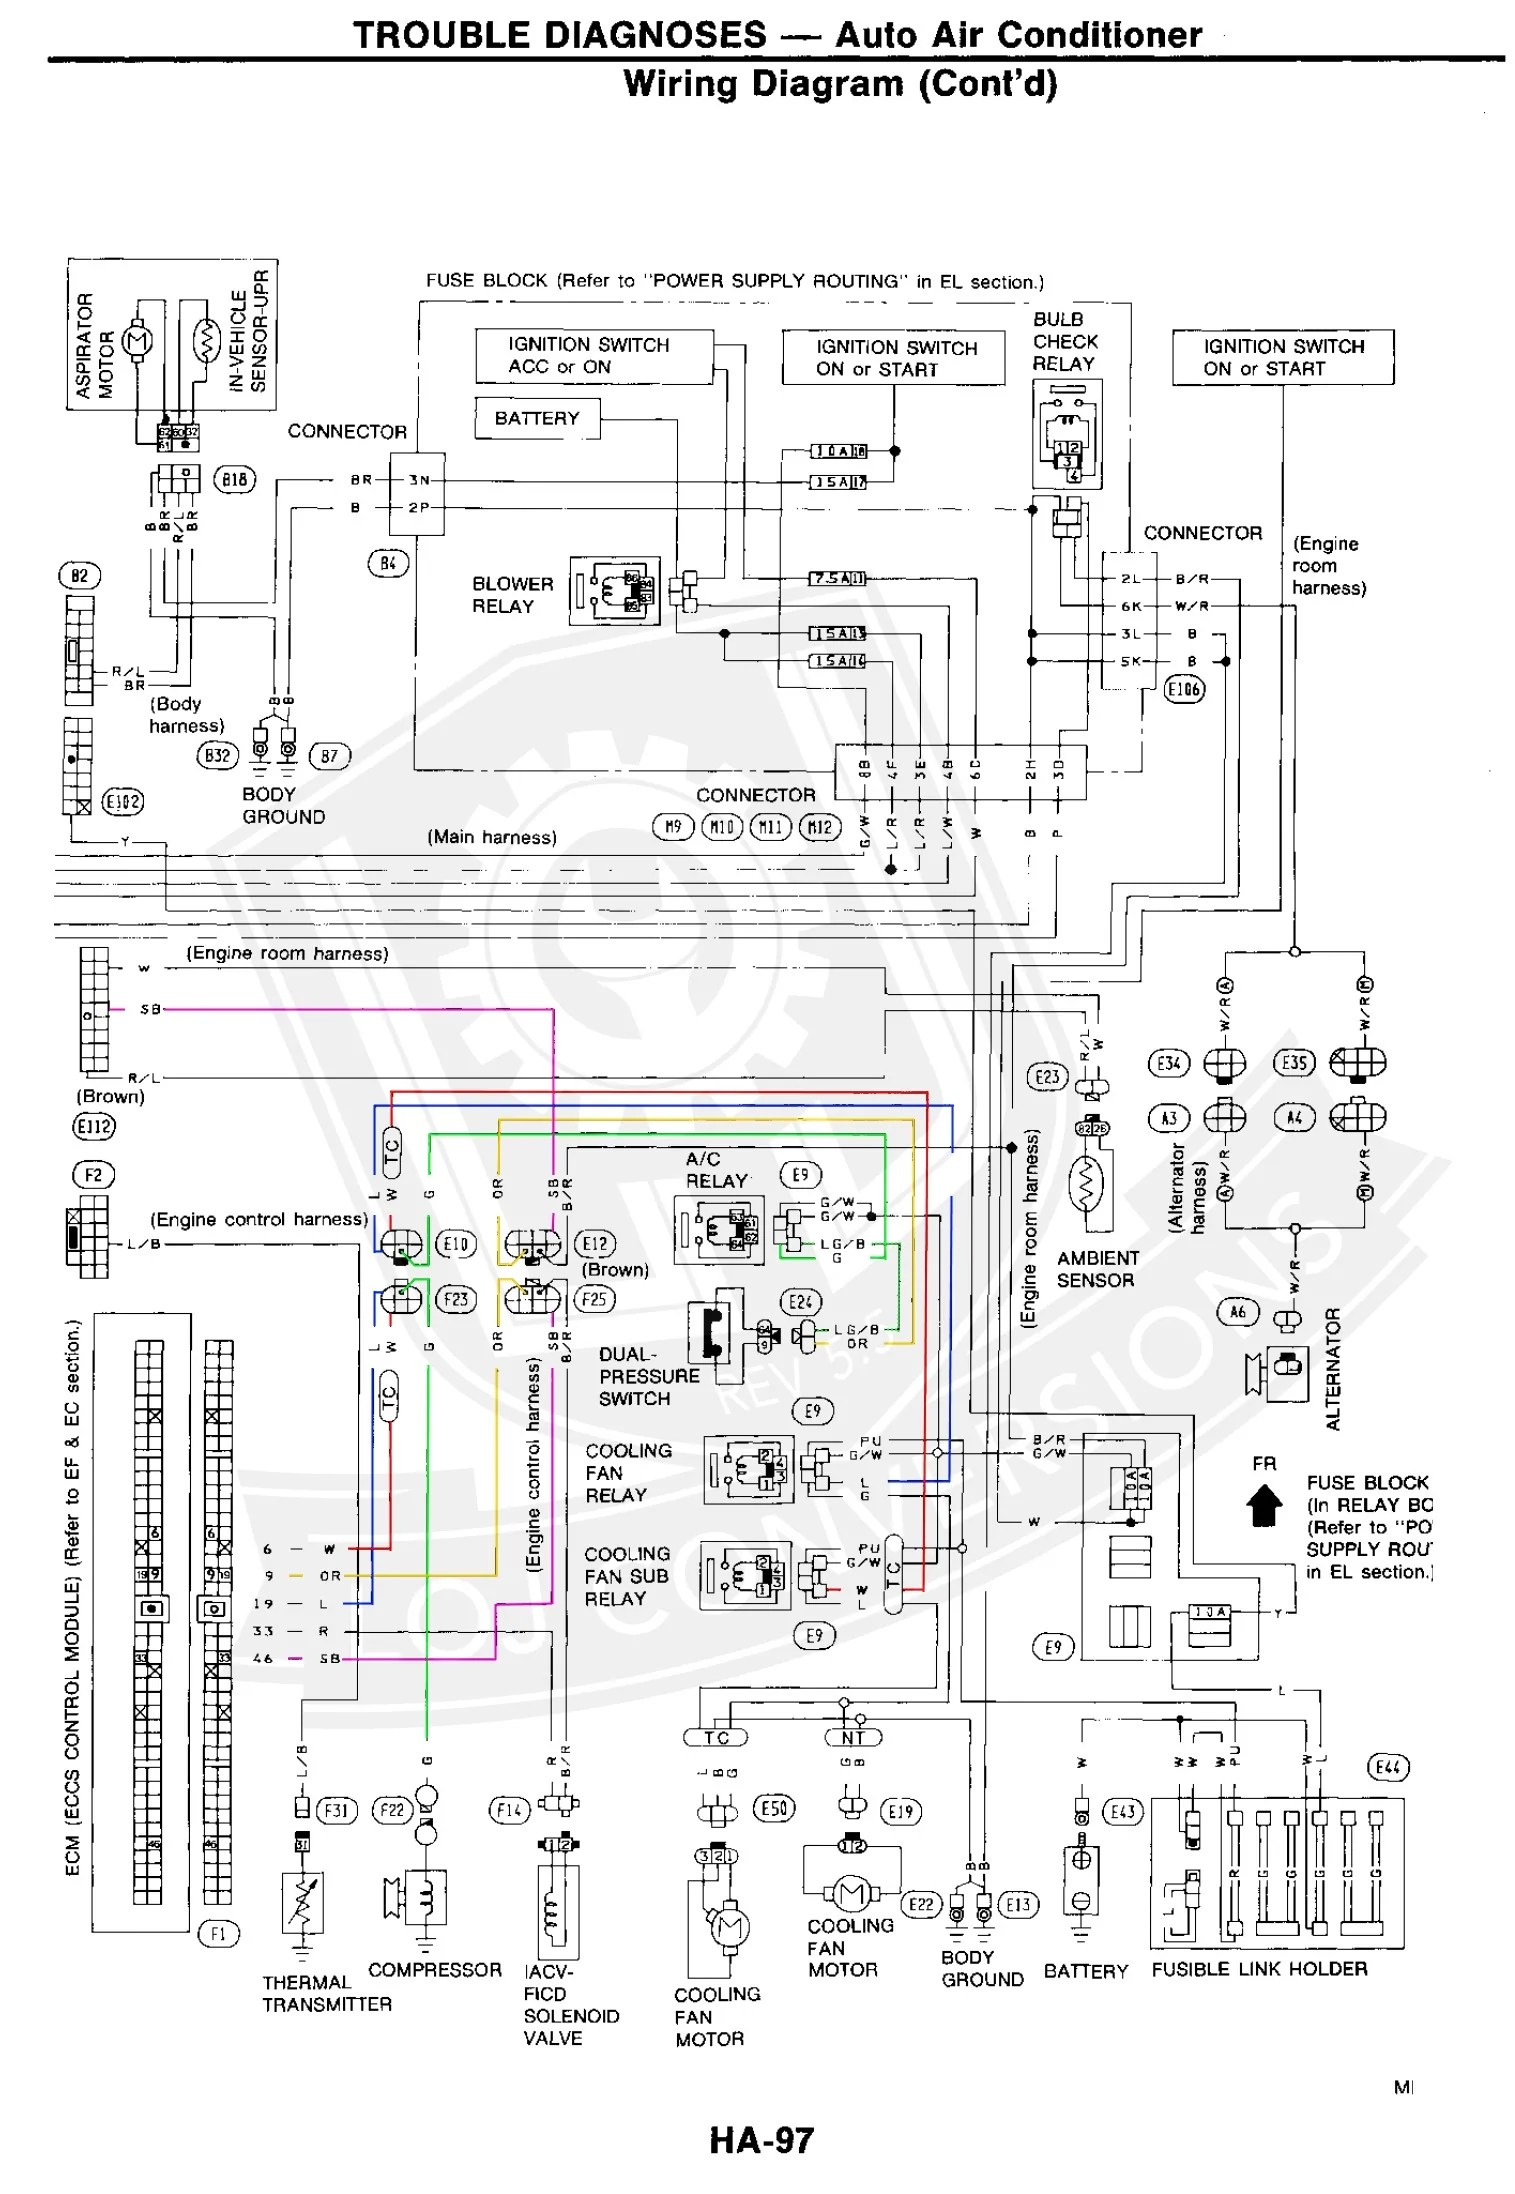 hight resolution of 1990 240sx wiring diagram schematic data wiring diagram schema 1990 240sx black 1990 240sx efi diagram